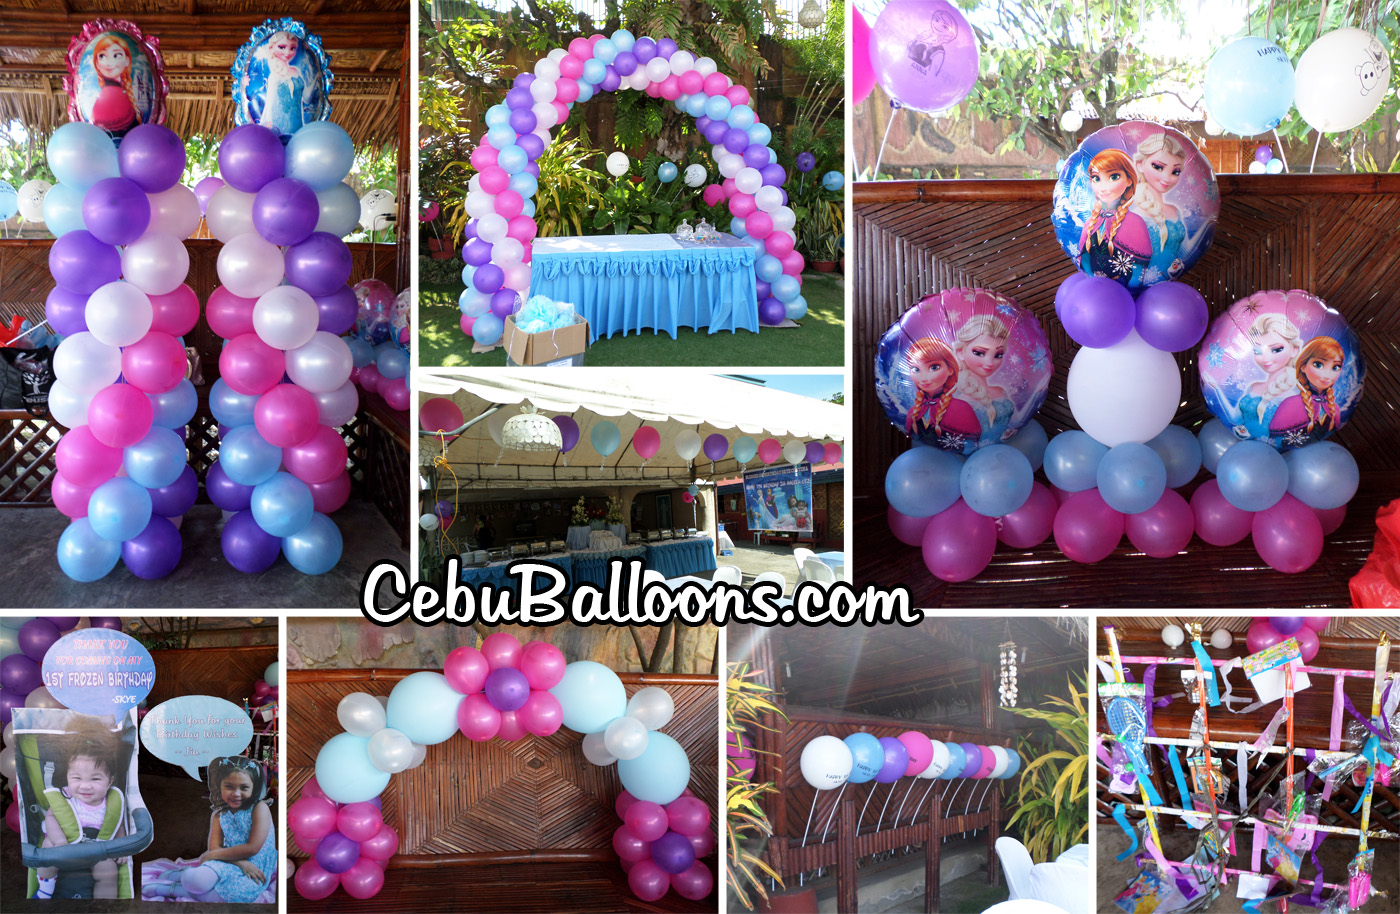 Birthday Party Venues In Cebu Balloons And